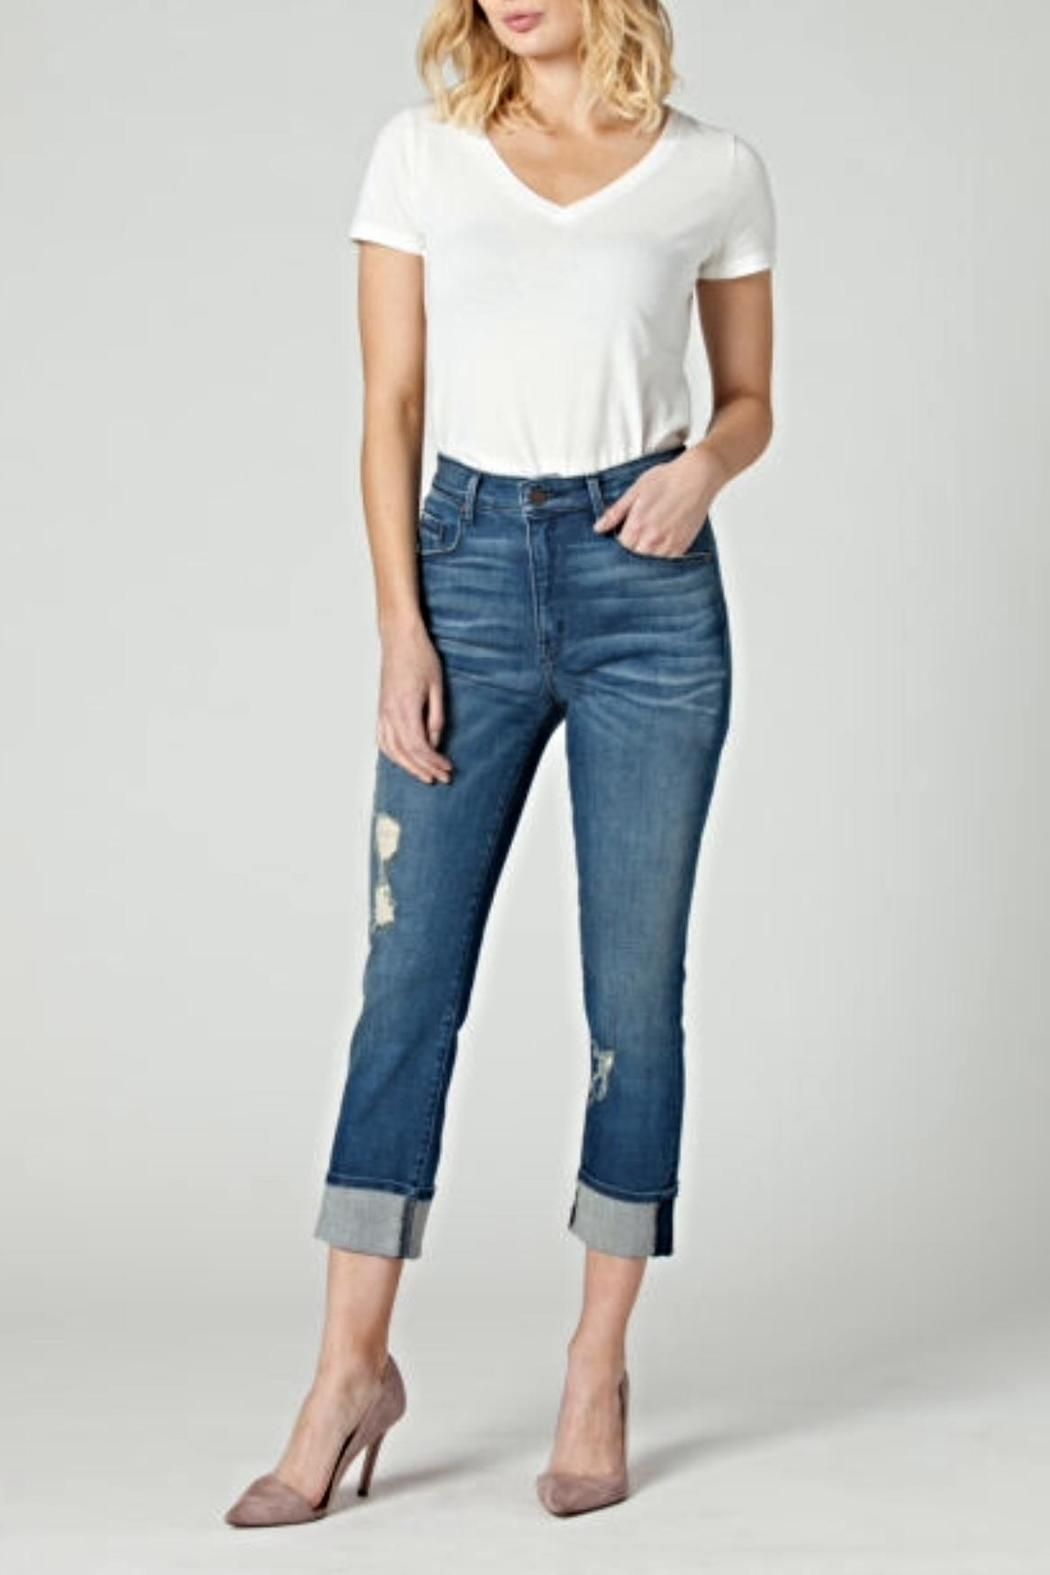 Parker Smith Pin Up Straight Jeans - Main Image